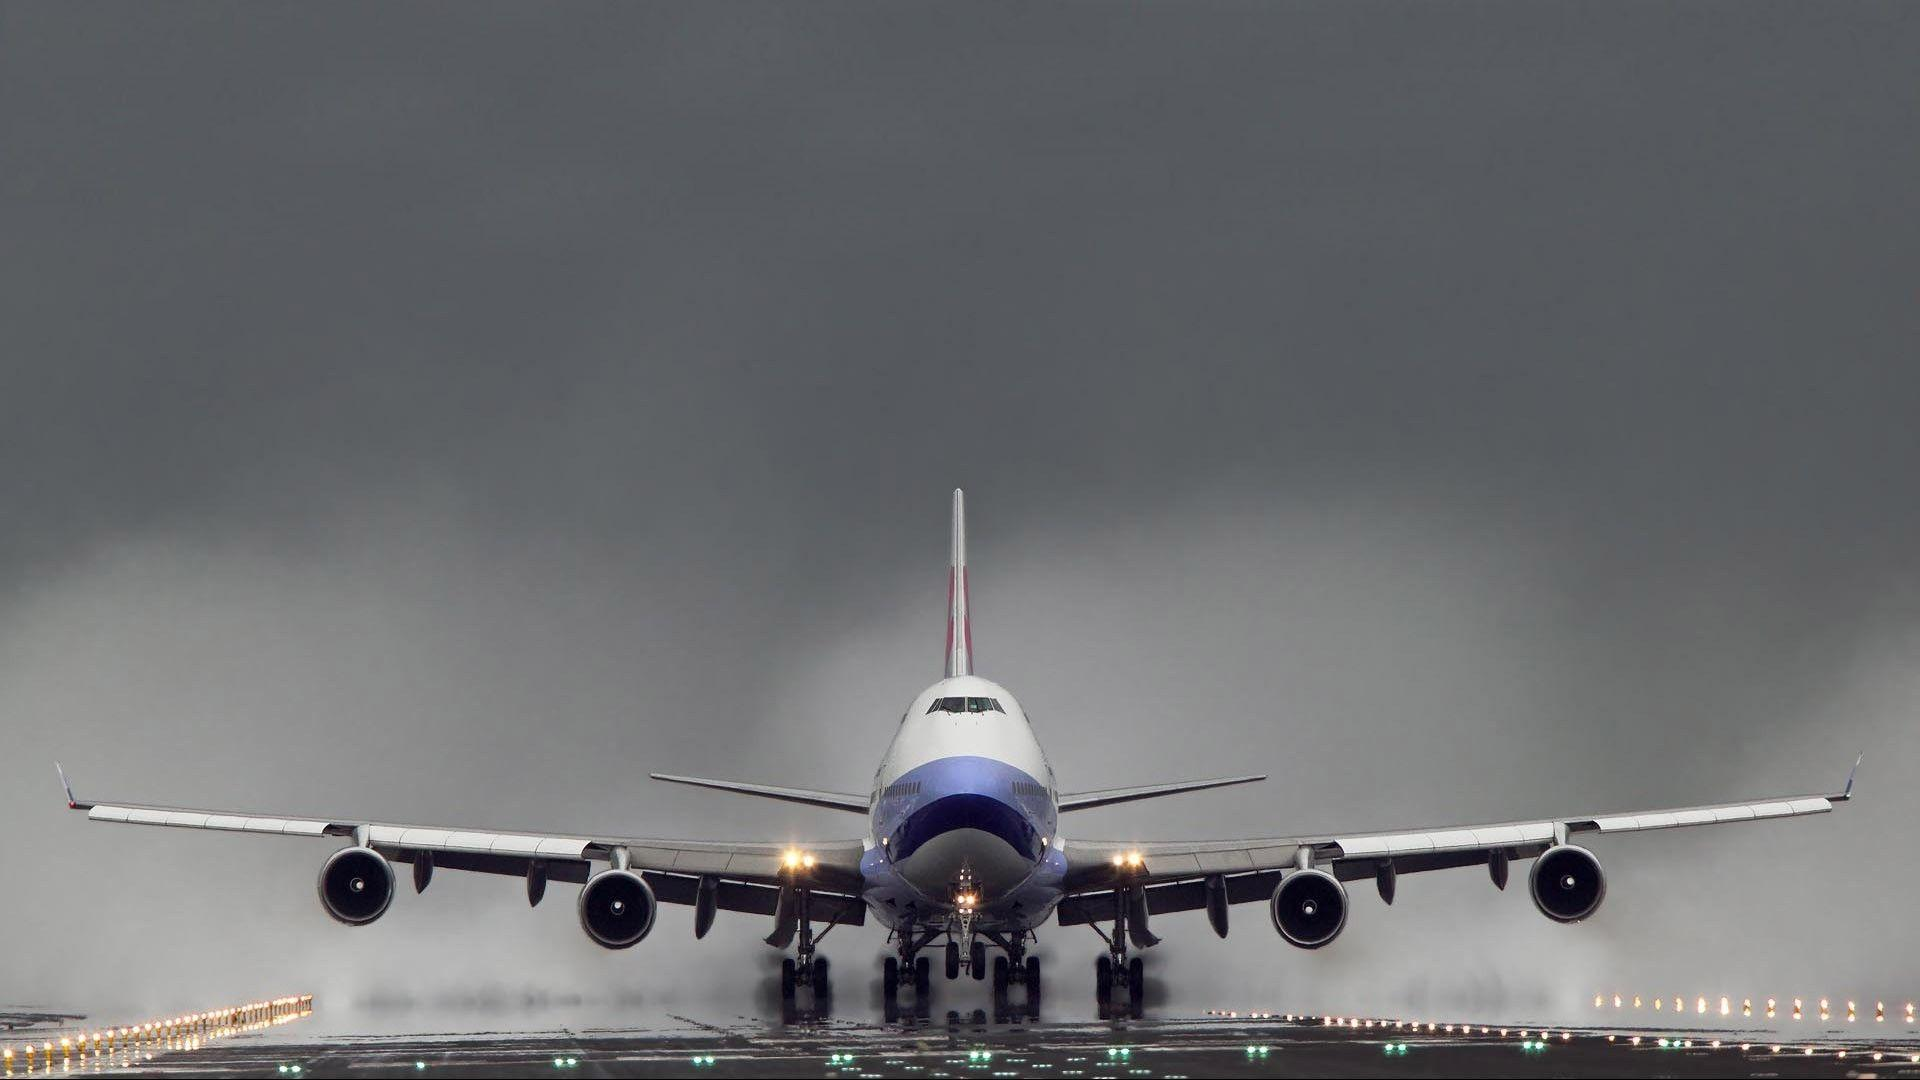 Boeing 747 Hd Wallpapers Wallpaper Cave